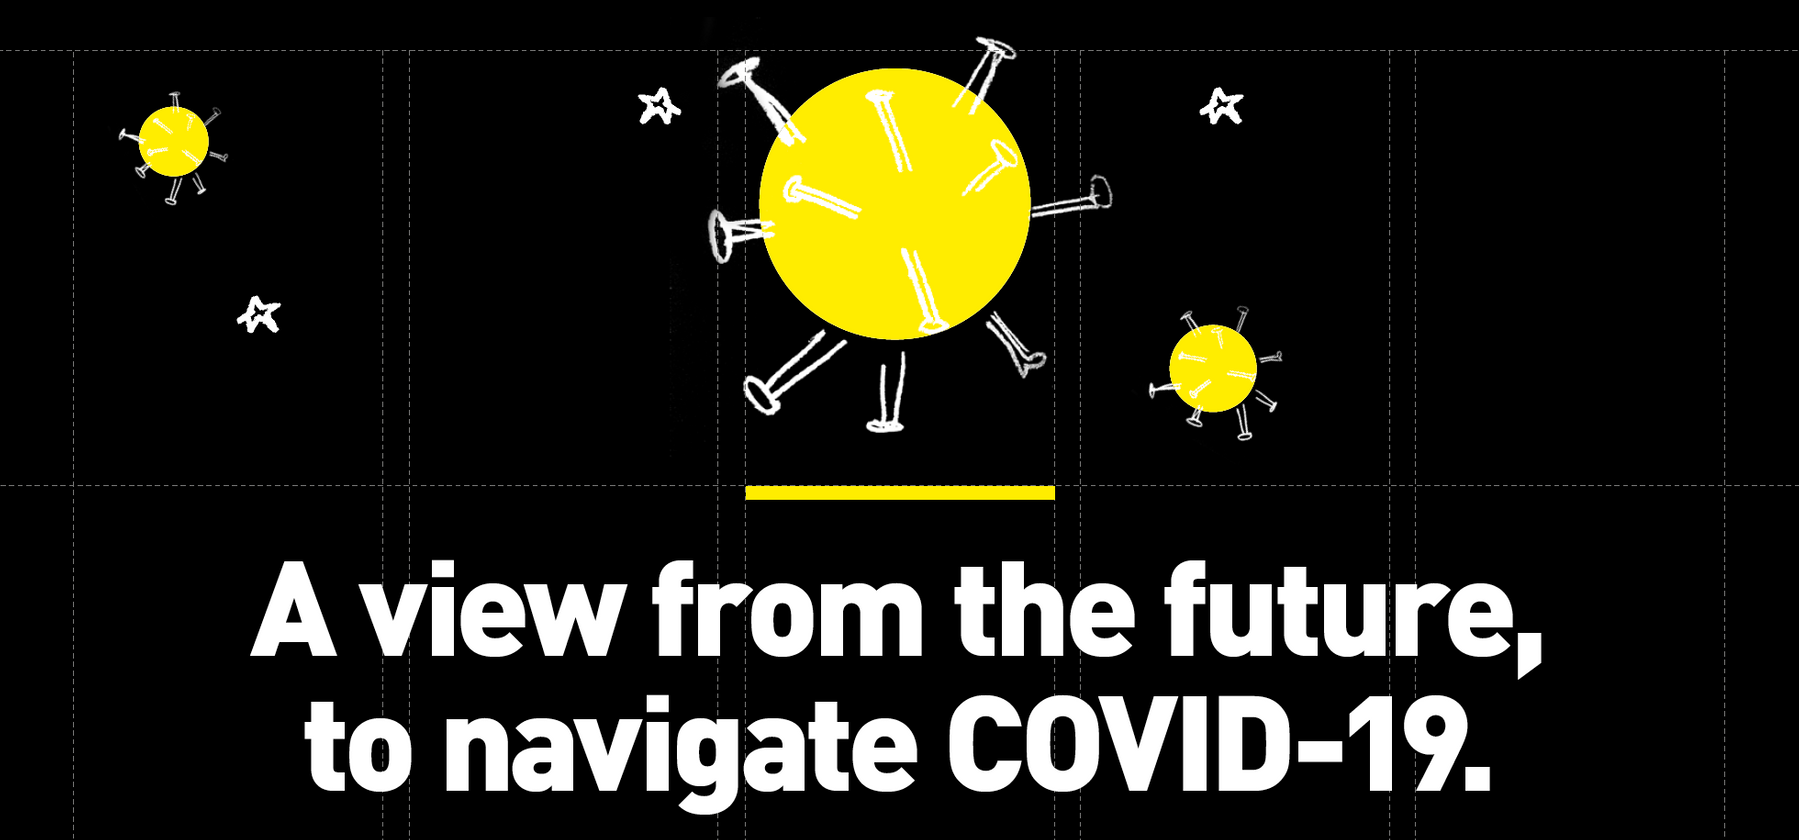 A view from the future, to navigate COVID-19